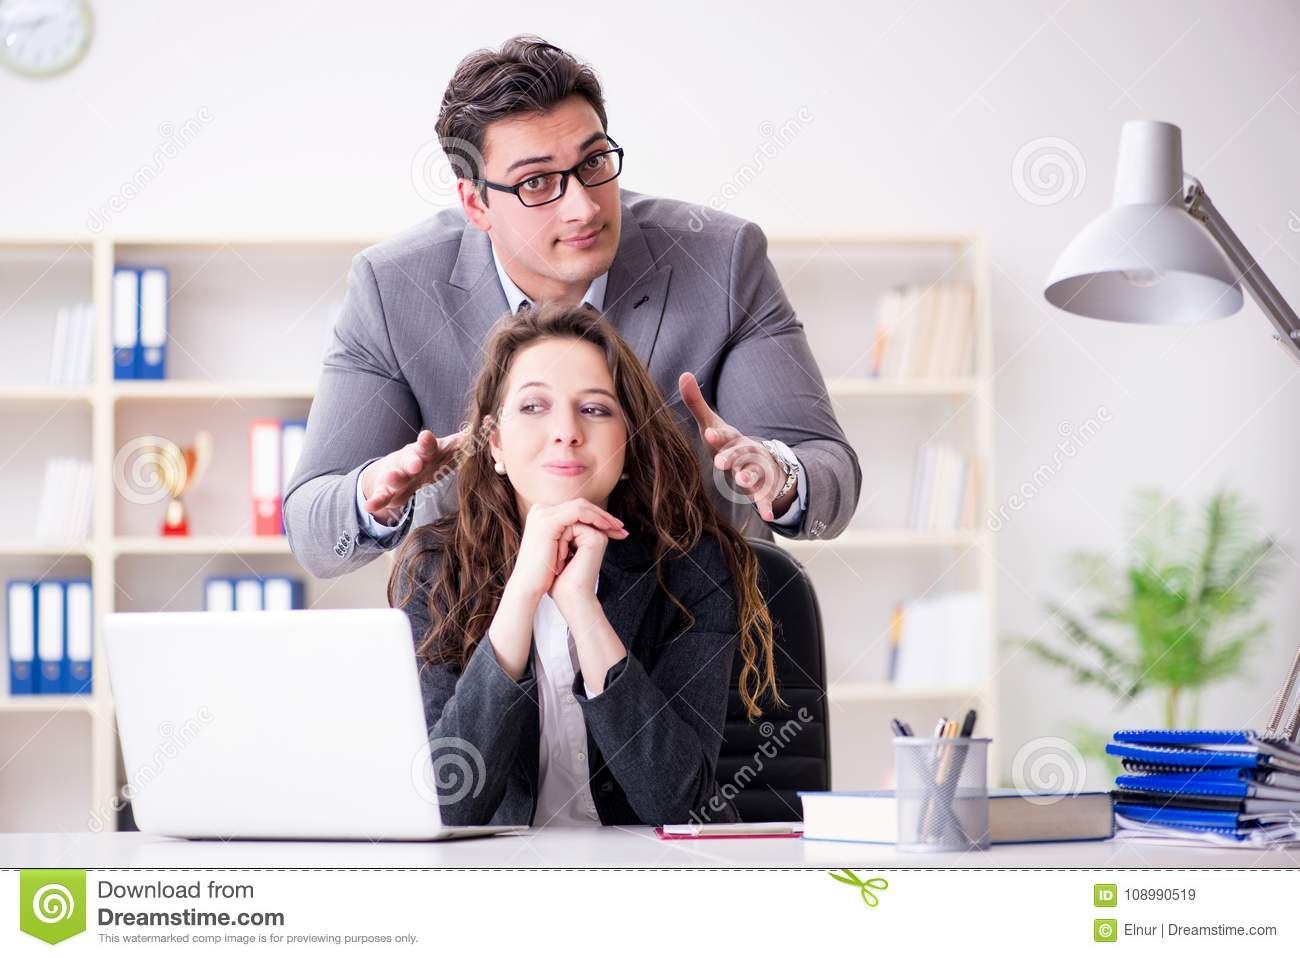 Man to woman sexual harassment